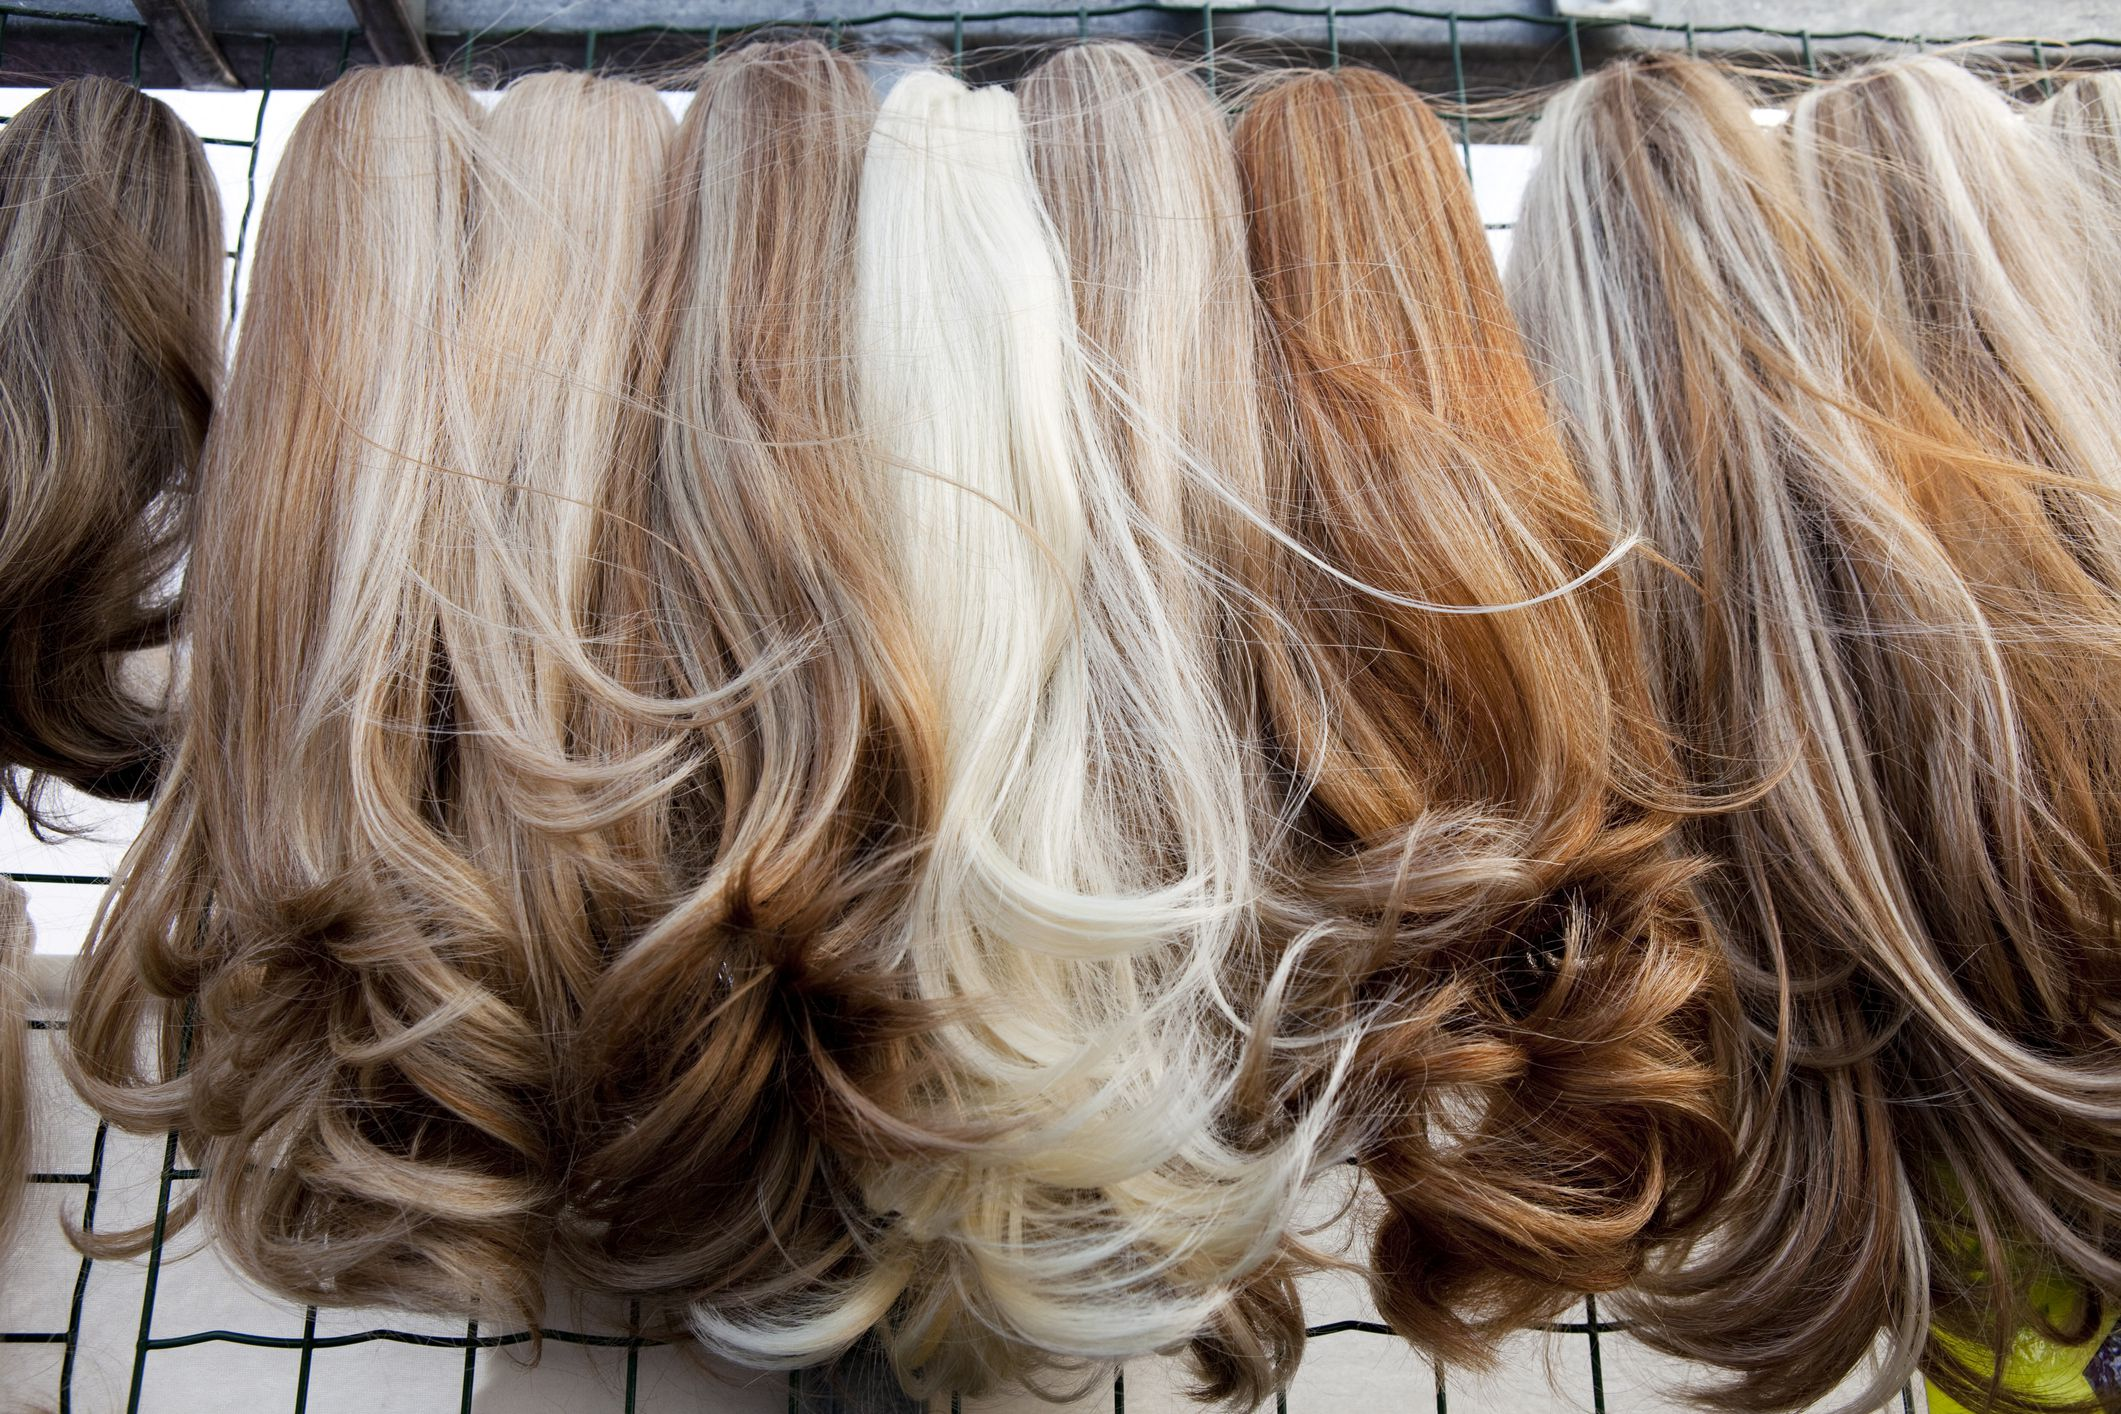 Quality do it yourself hair extensions for short hair policies the how to place clip in hair extensions diy hair extensions image source liveabout solutioingenieria Image collections